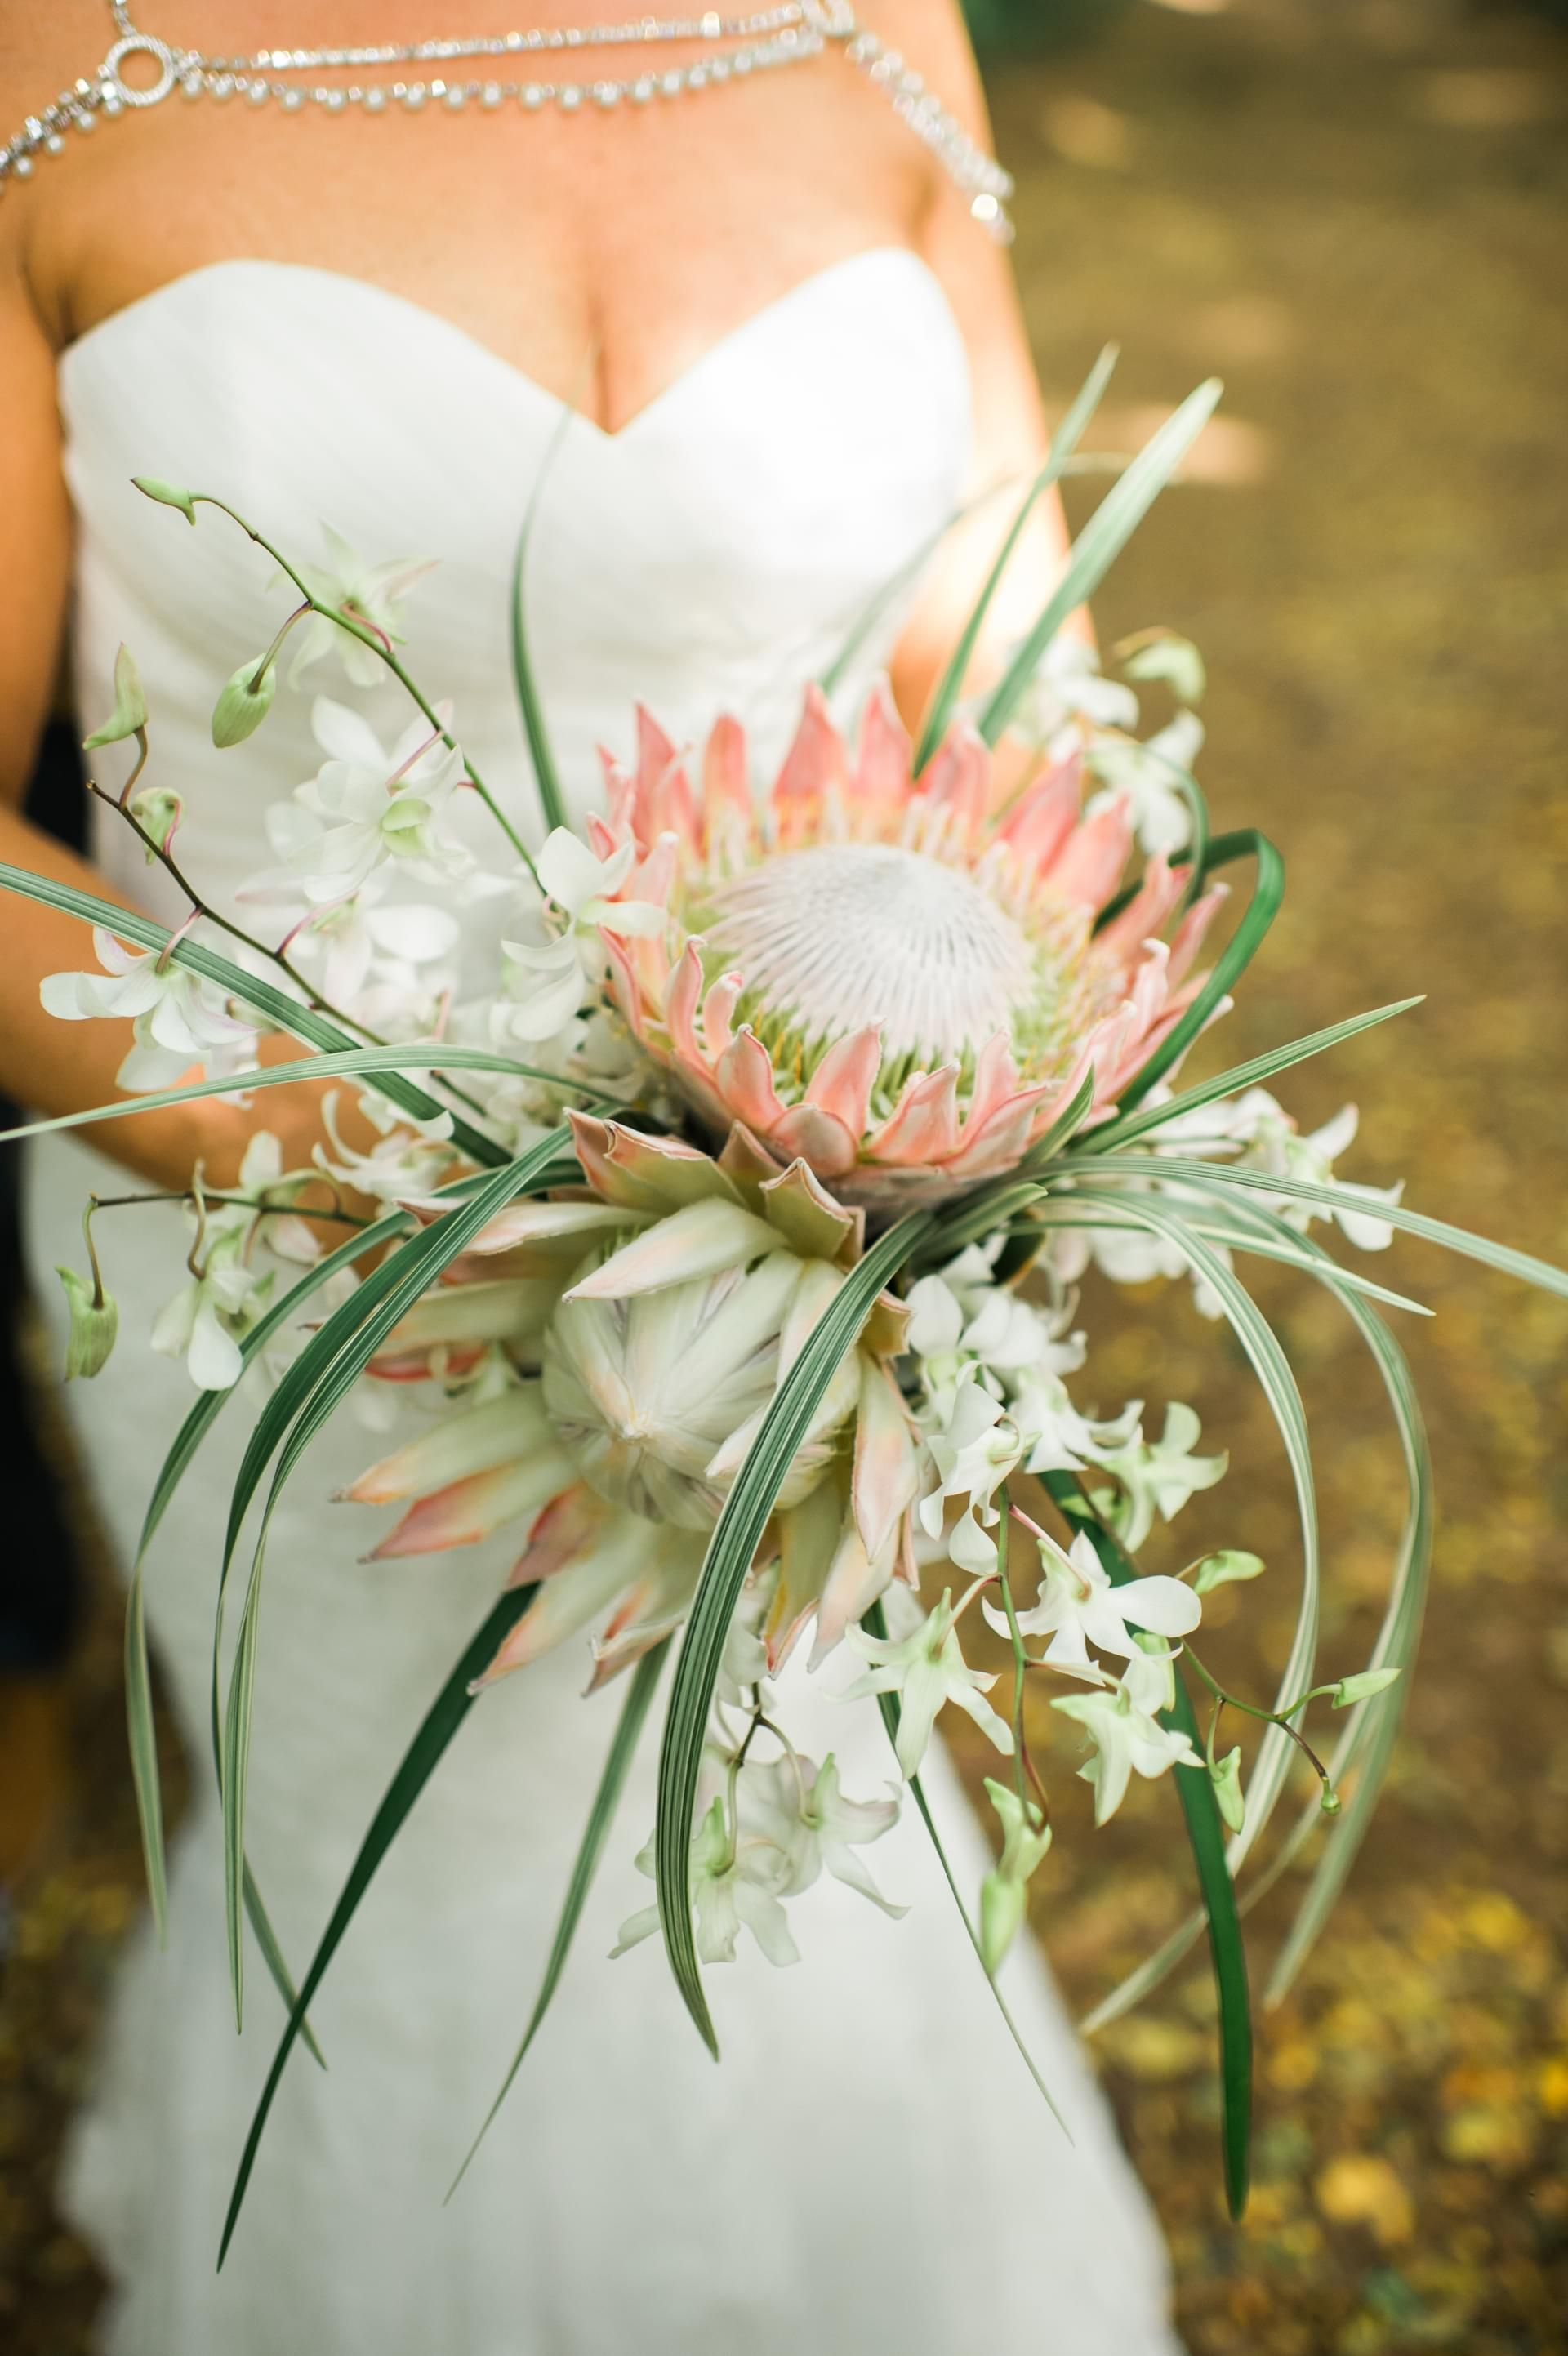 The Smarter Way to Wed | Pinterest | White orchids, Bridal bouquets ...